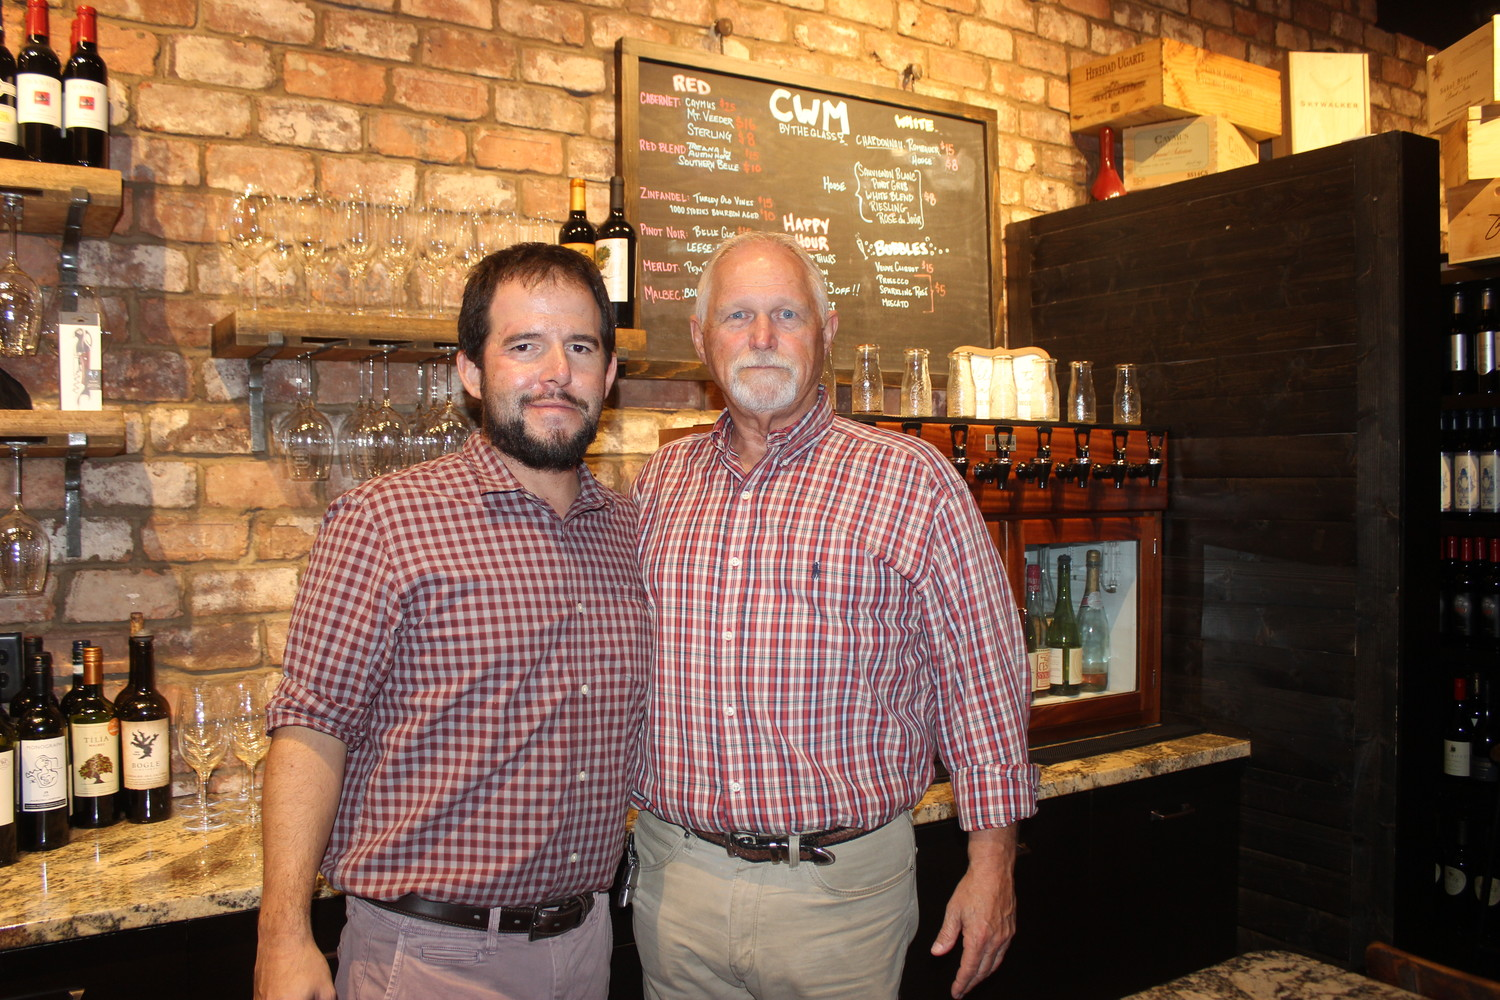 Coastal Wine Market & Tasting Room Co-owner Steve Lourie and employee Allen Horne